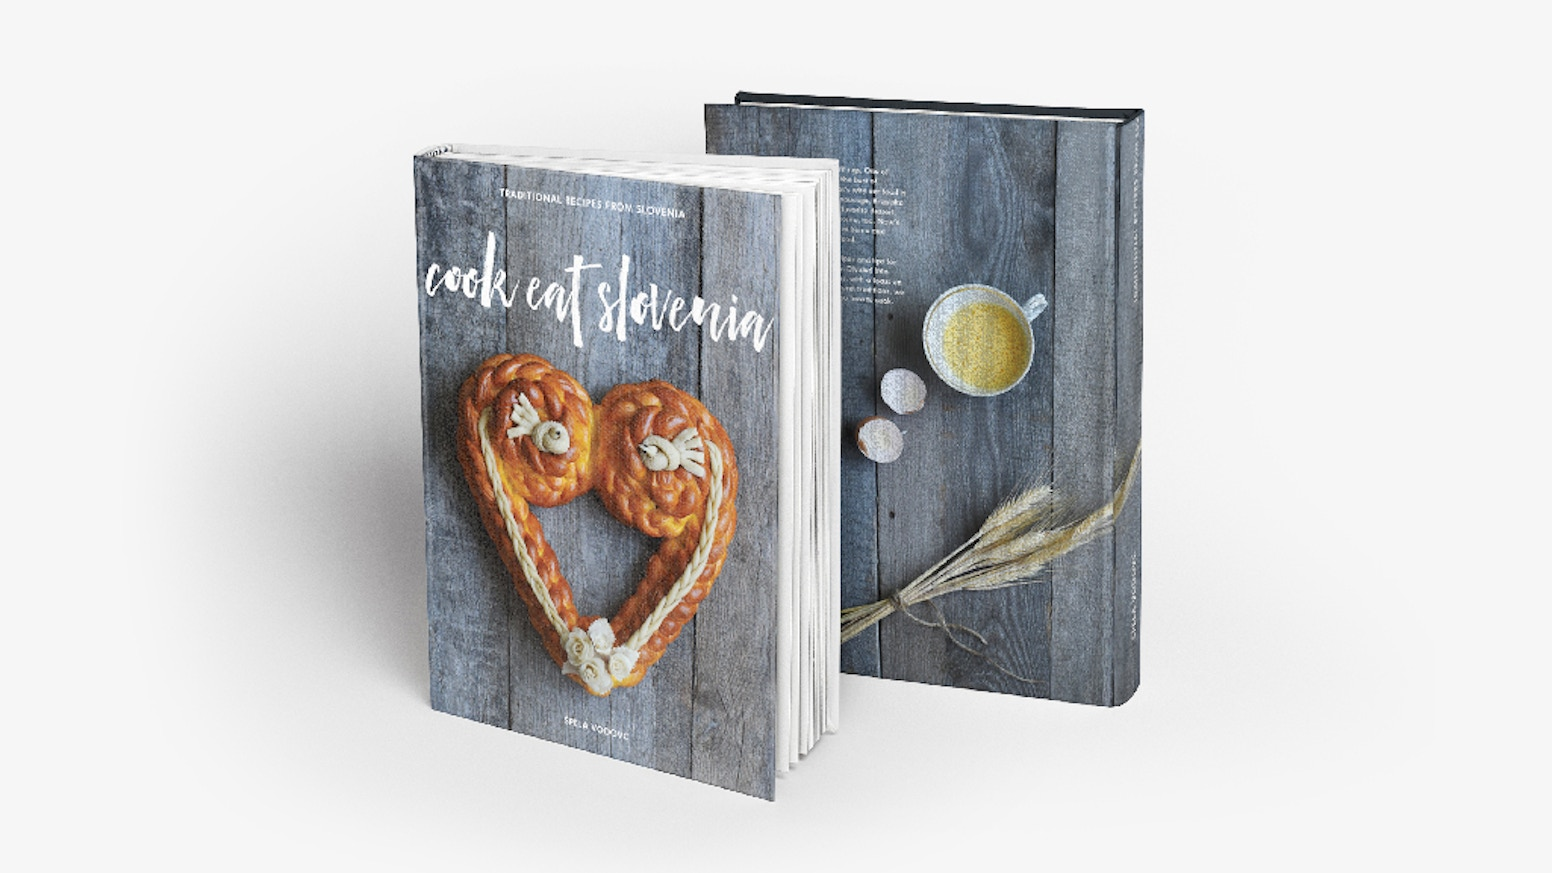 A cookbook that brings traditional Slovenian recipes and family stories to your kitchens worldwide!